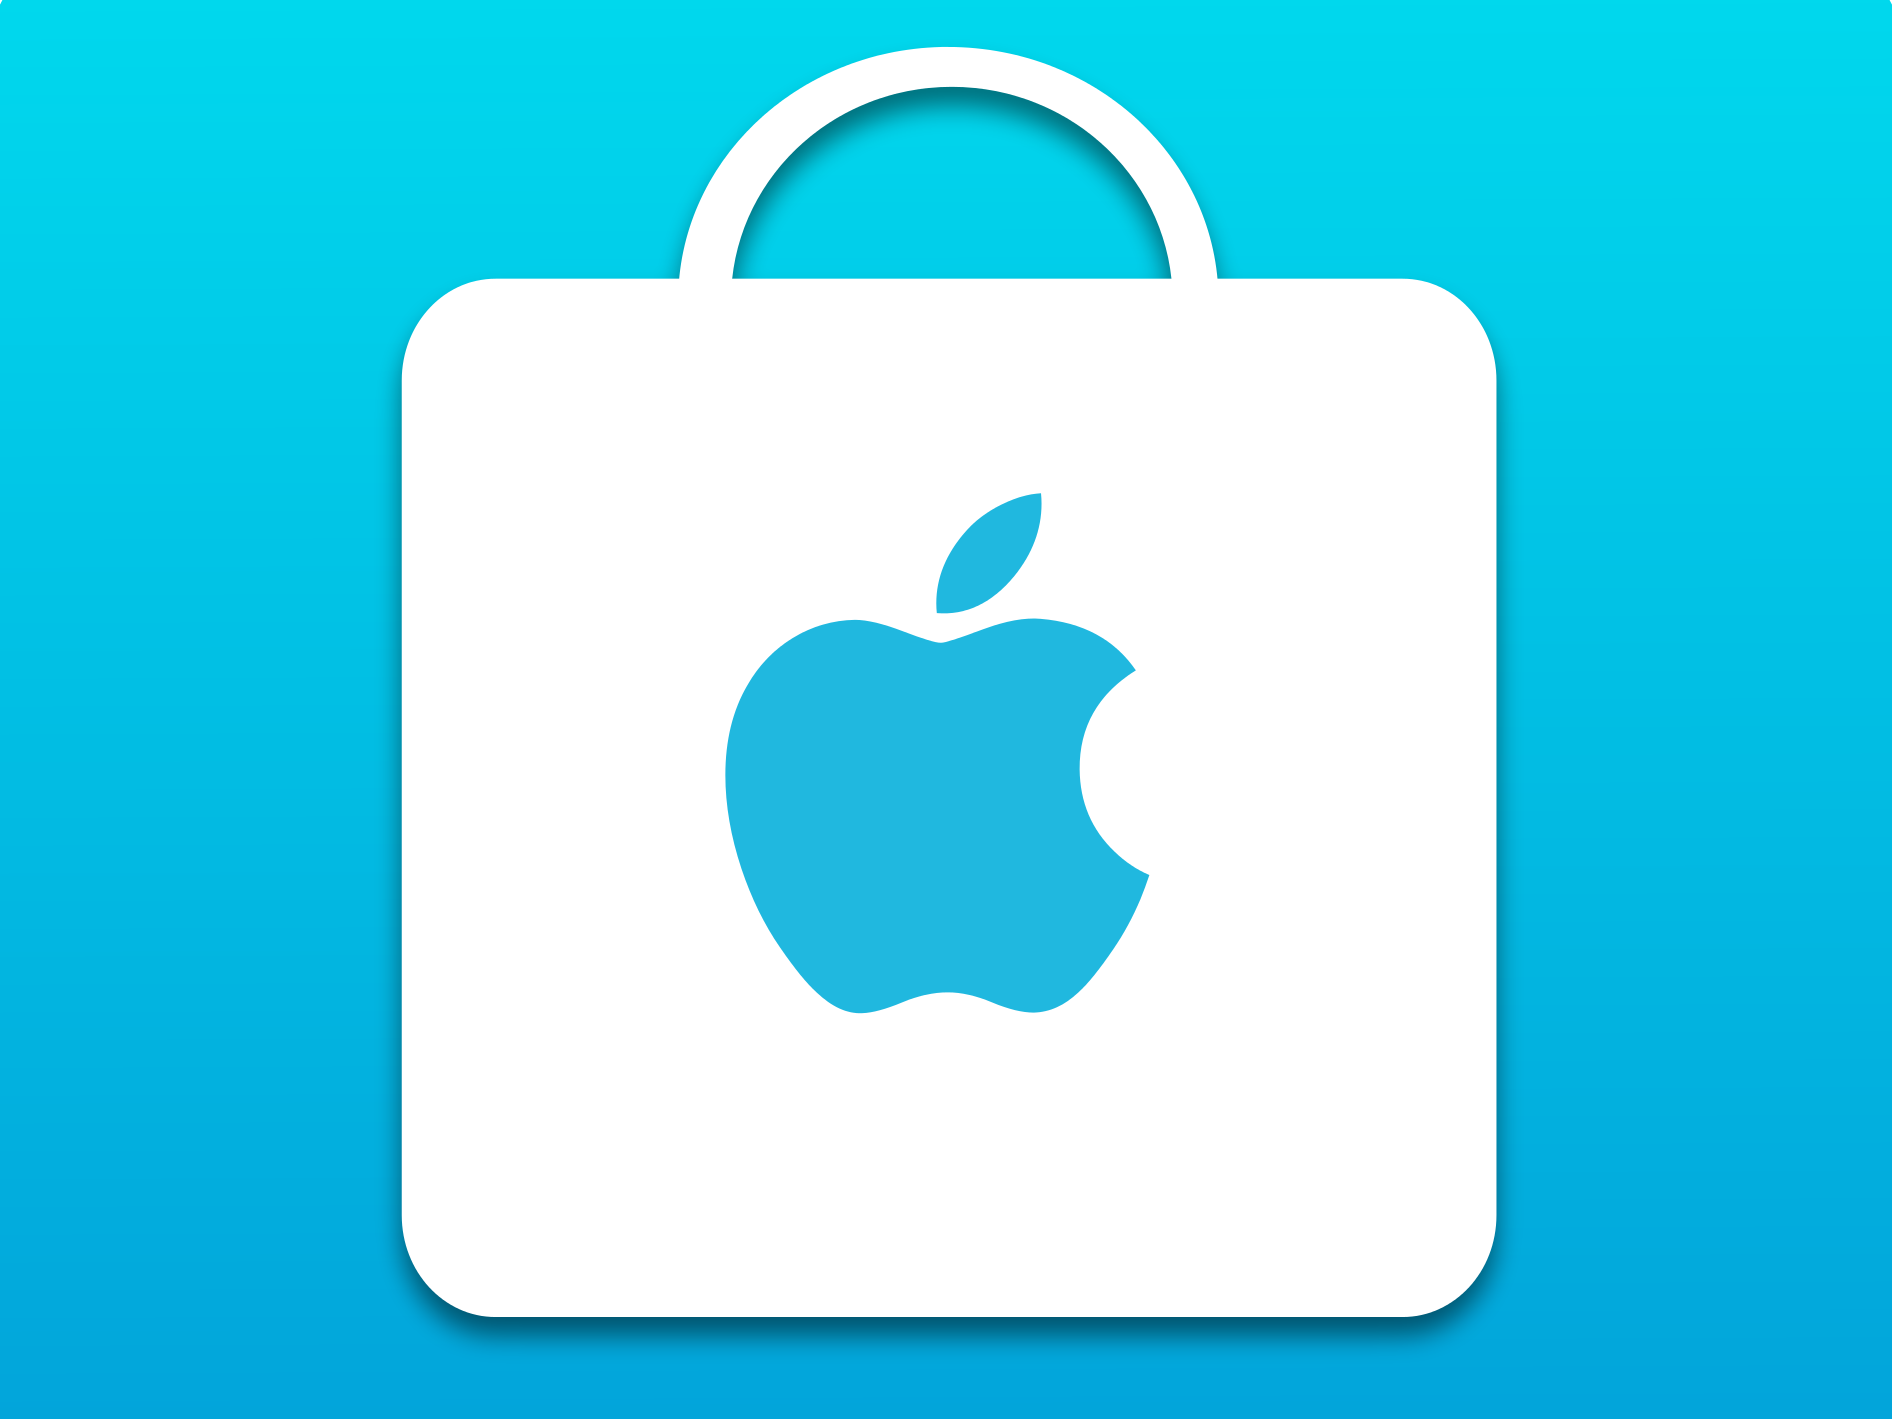 Apple to launch its online store in India